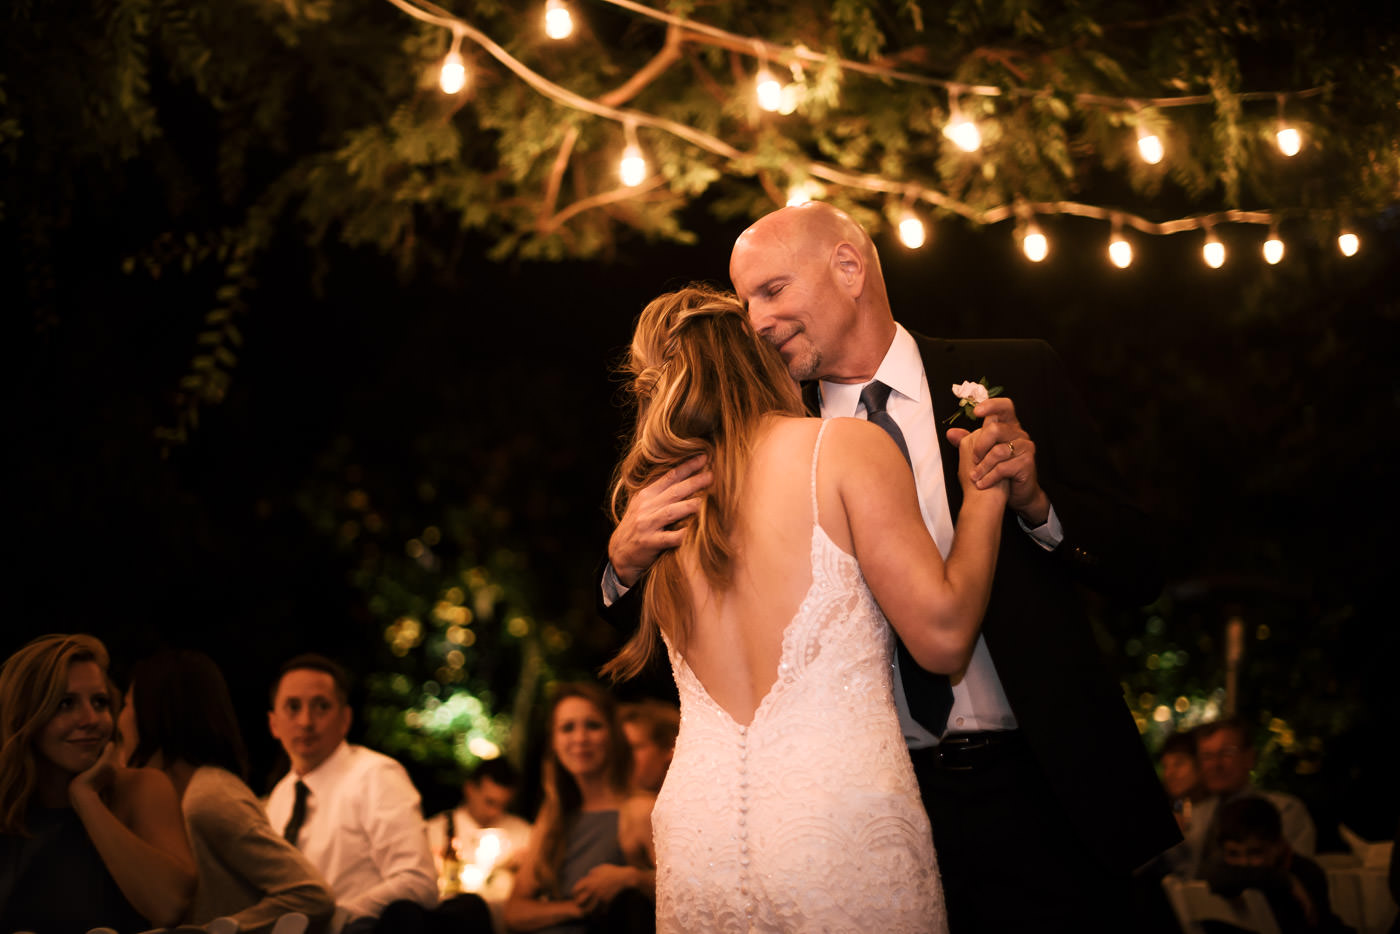 Father is overcome with emotion as he dances with his daughter at the recpetion after a romantic Temecula Wedding.